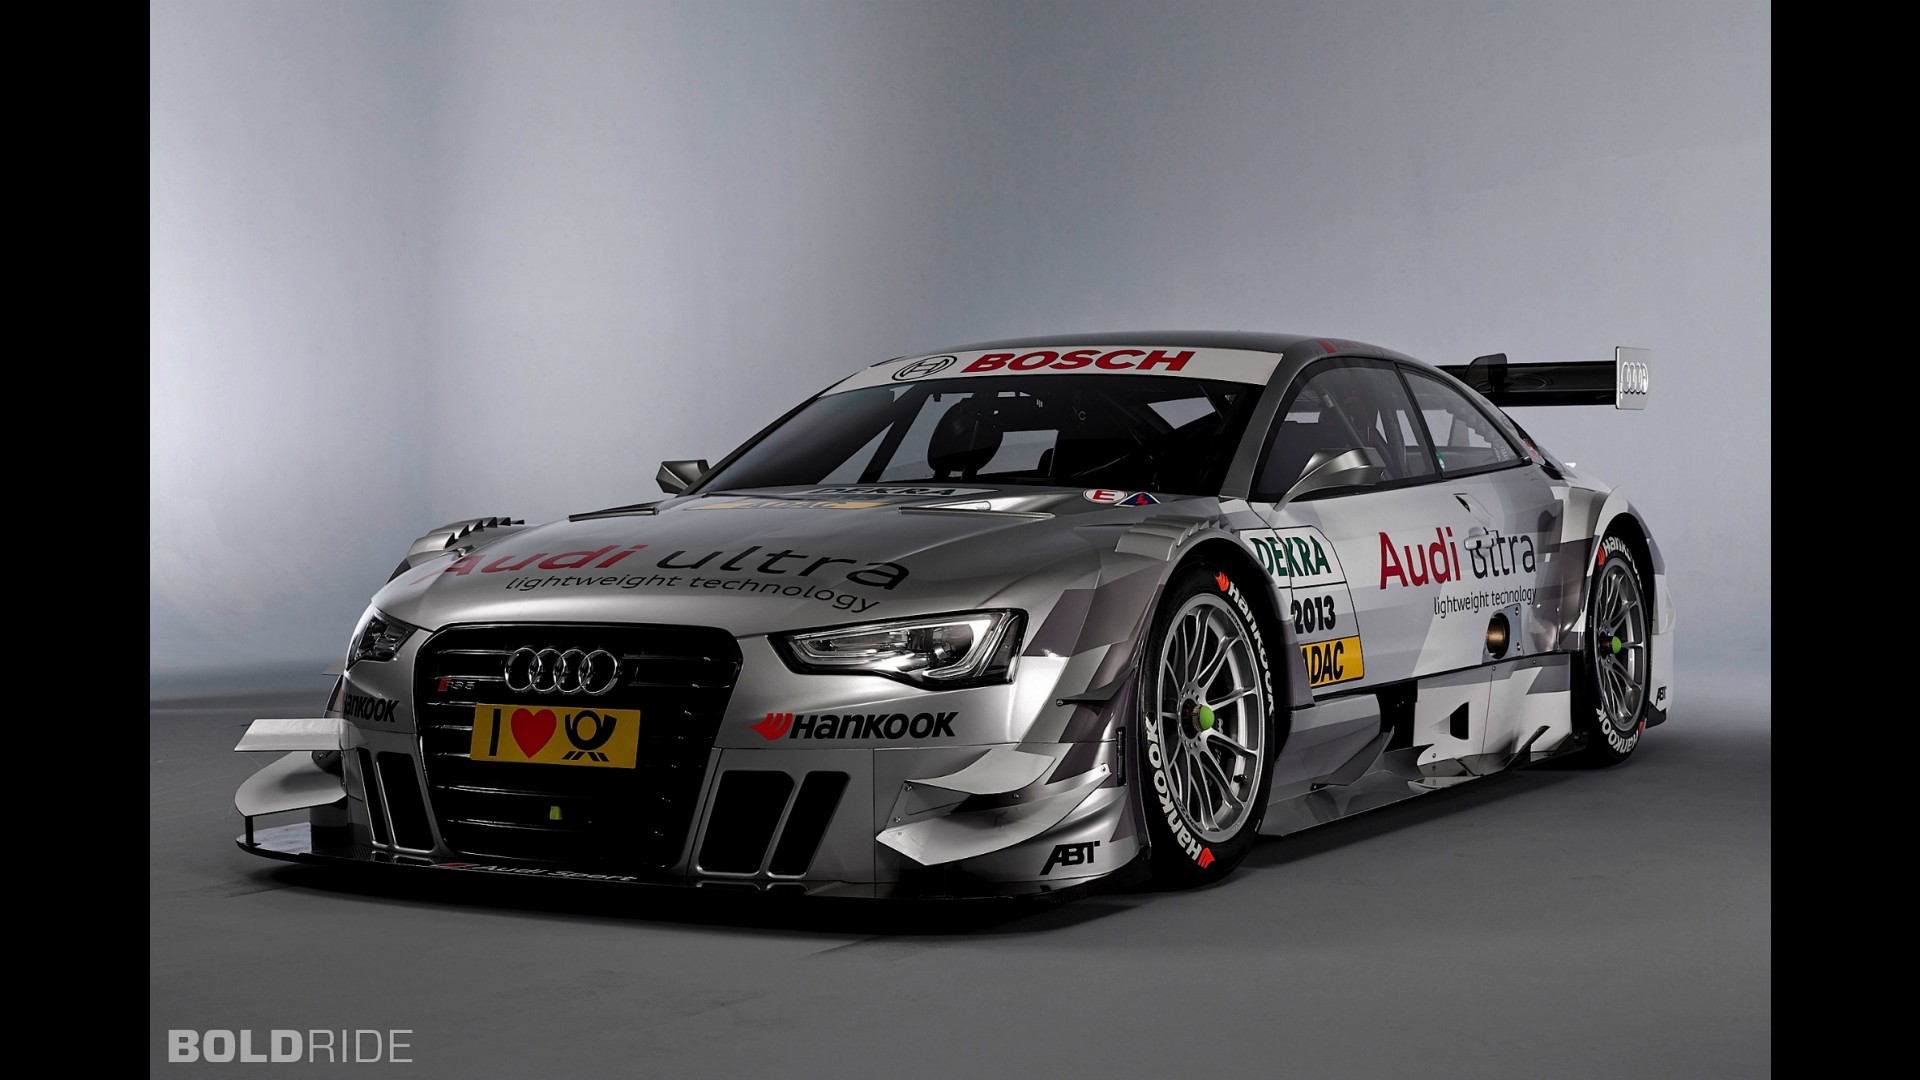 Car Lineup Wallpaper Audi Rs 5 Dtm